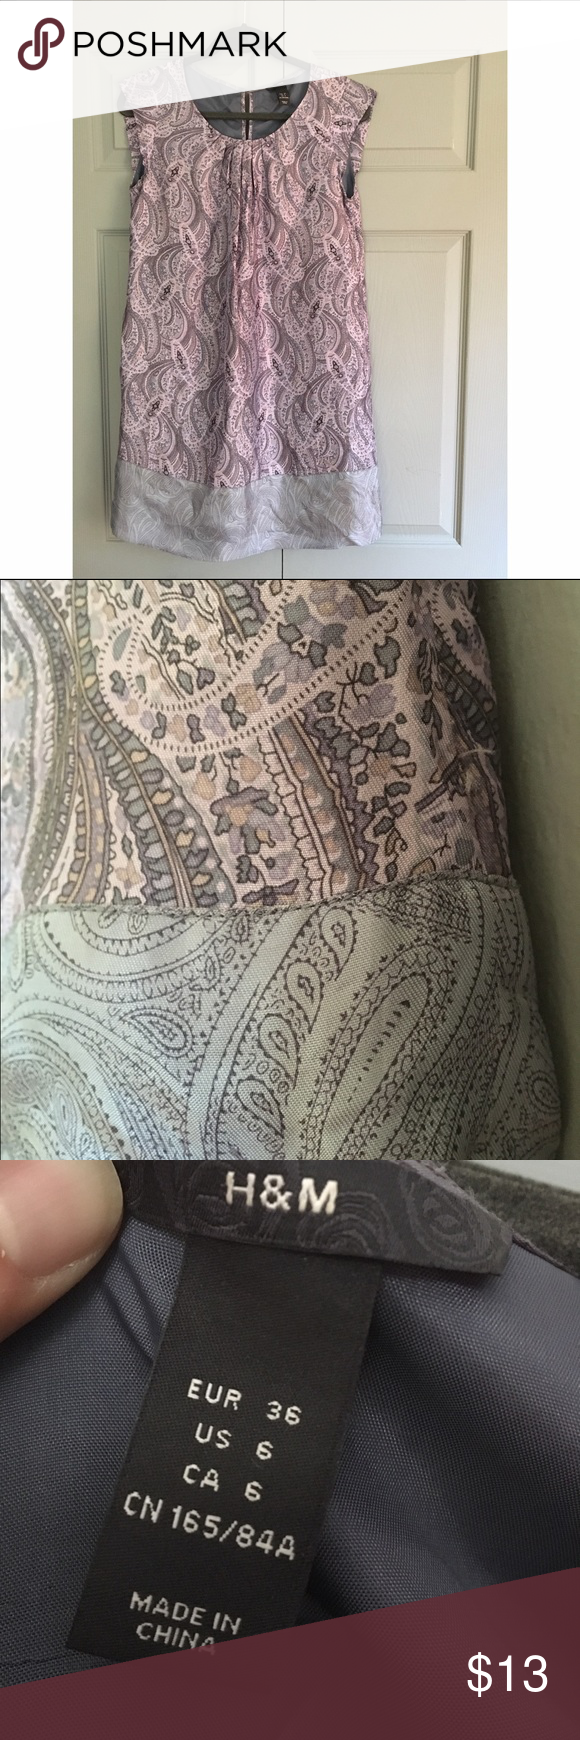 Hum purple paisley dress worn a handful of times and several years